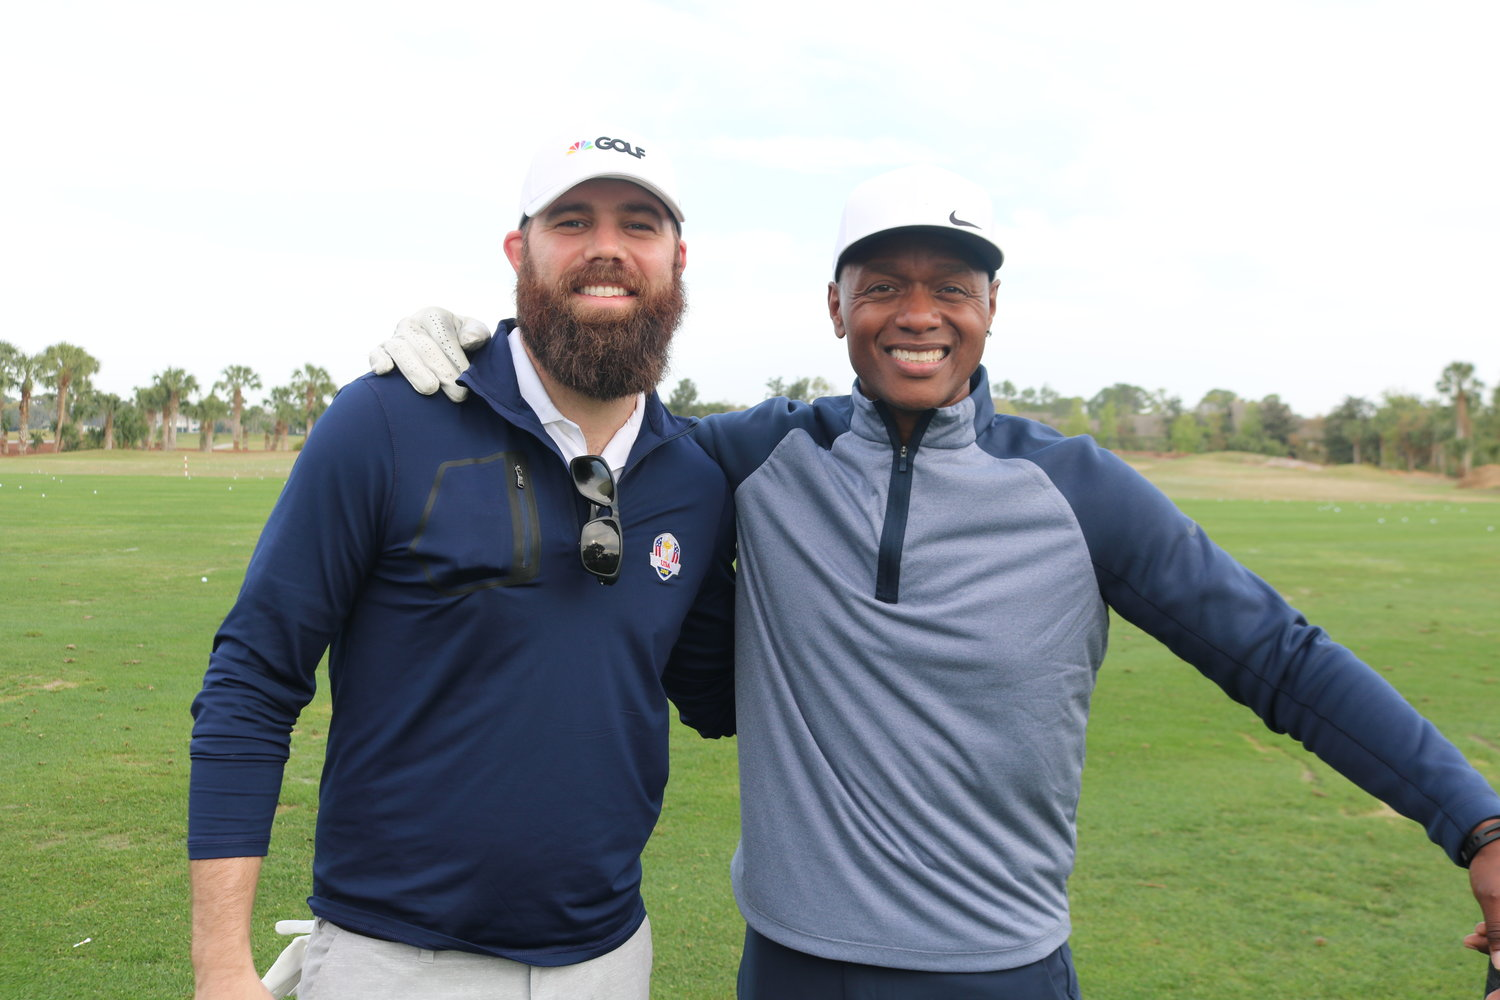 Jordan Davis and Javier Colon at the golf tournament at Sawgrass Country Club